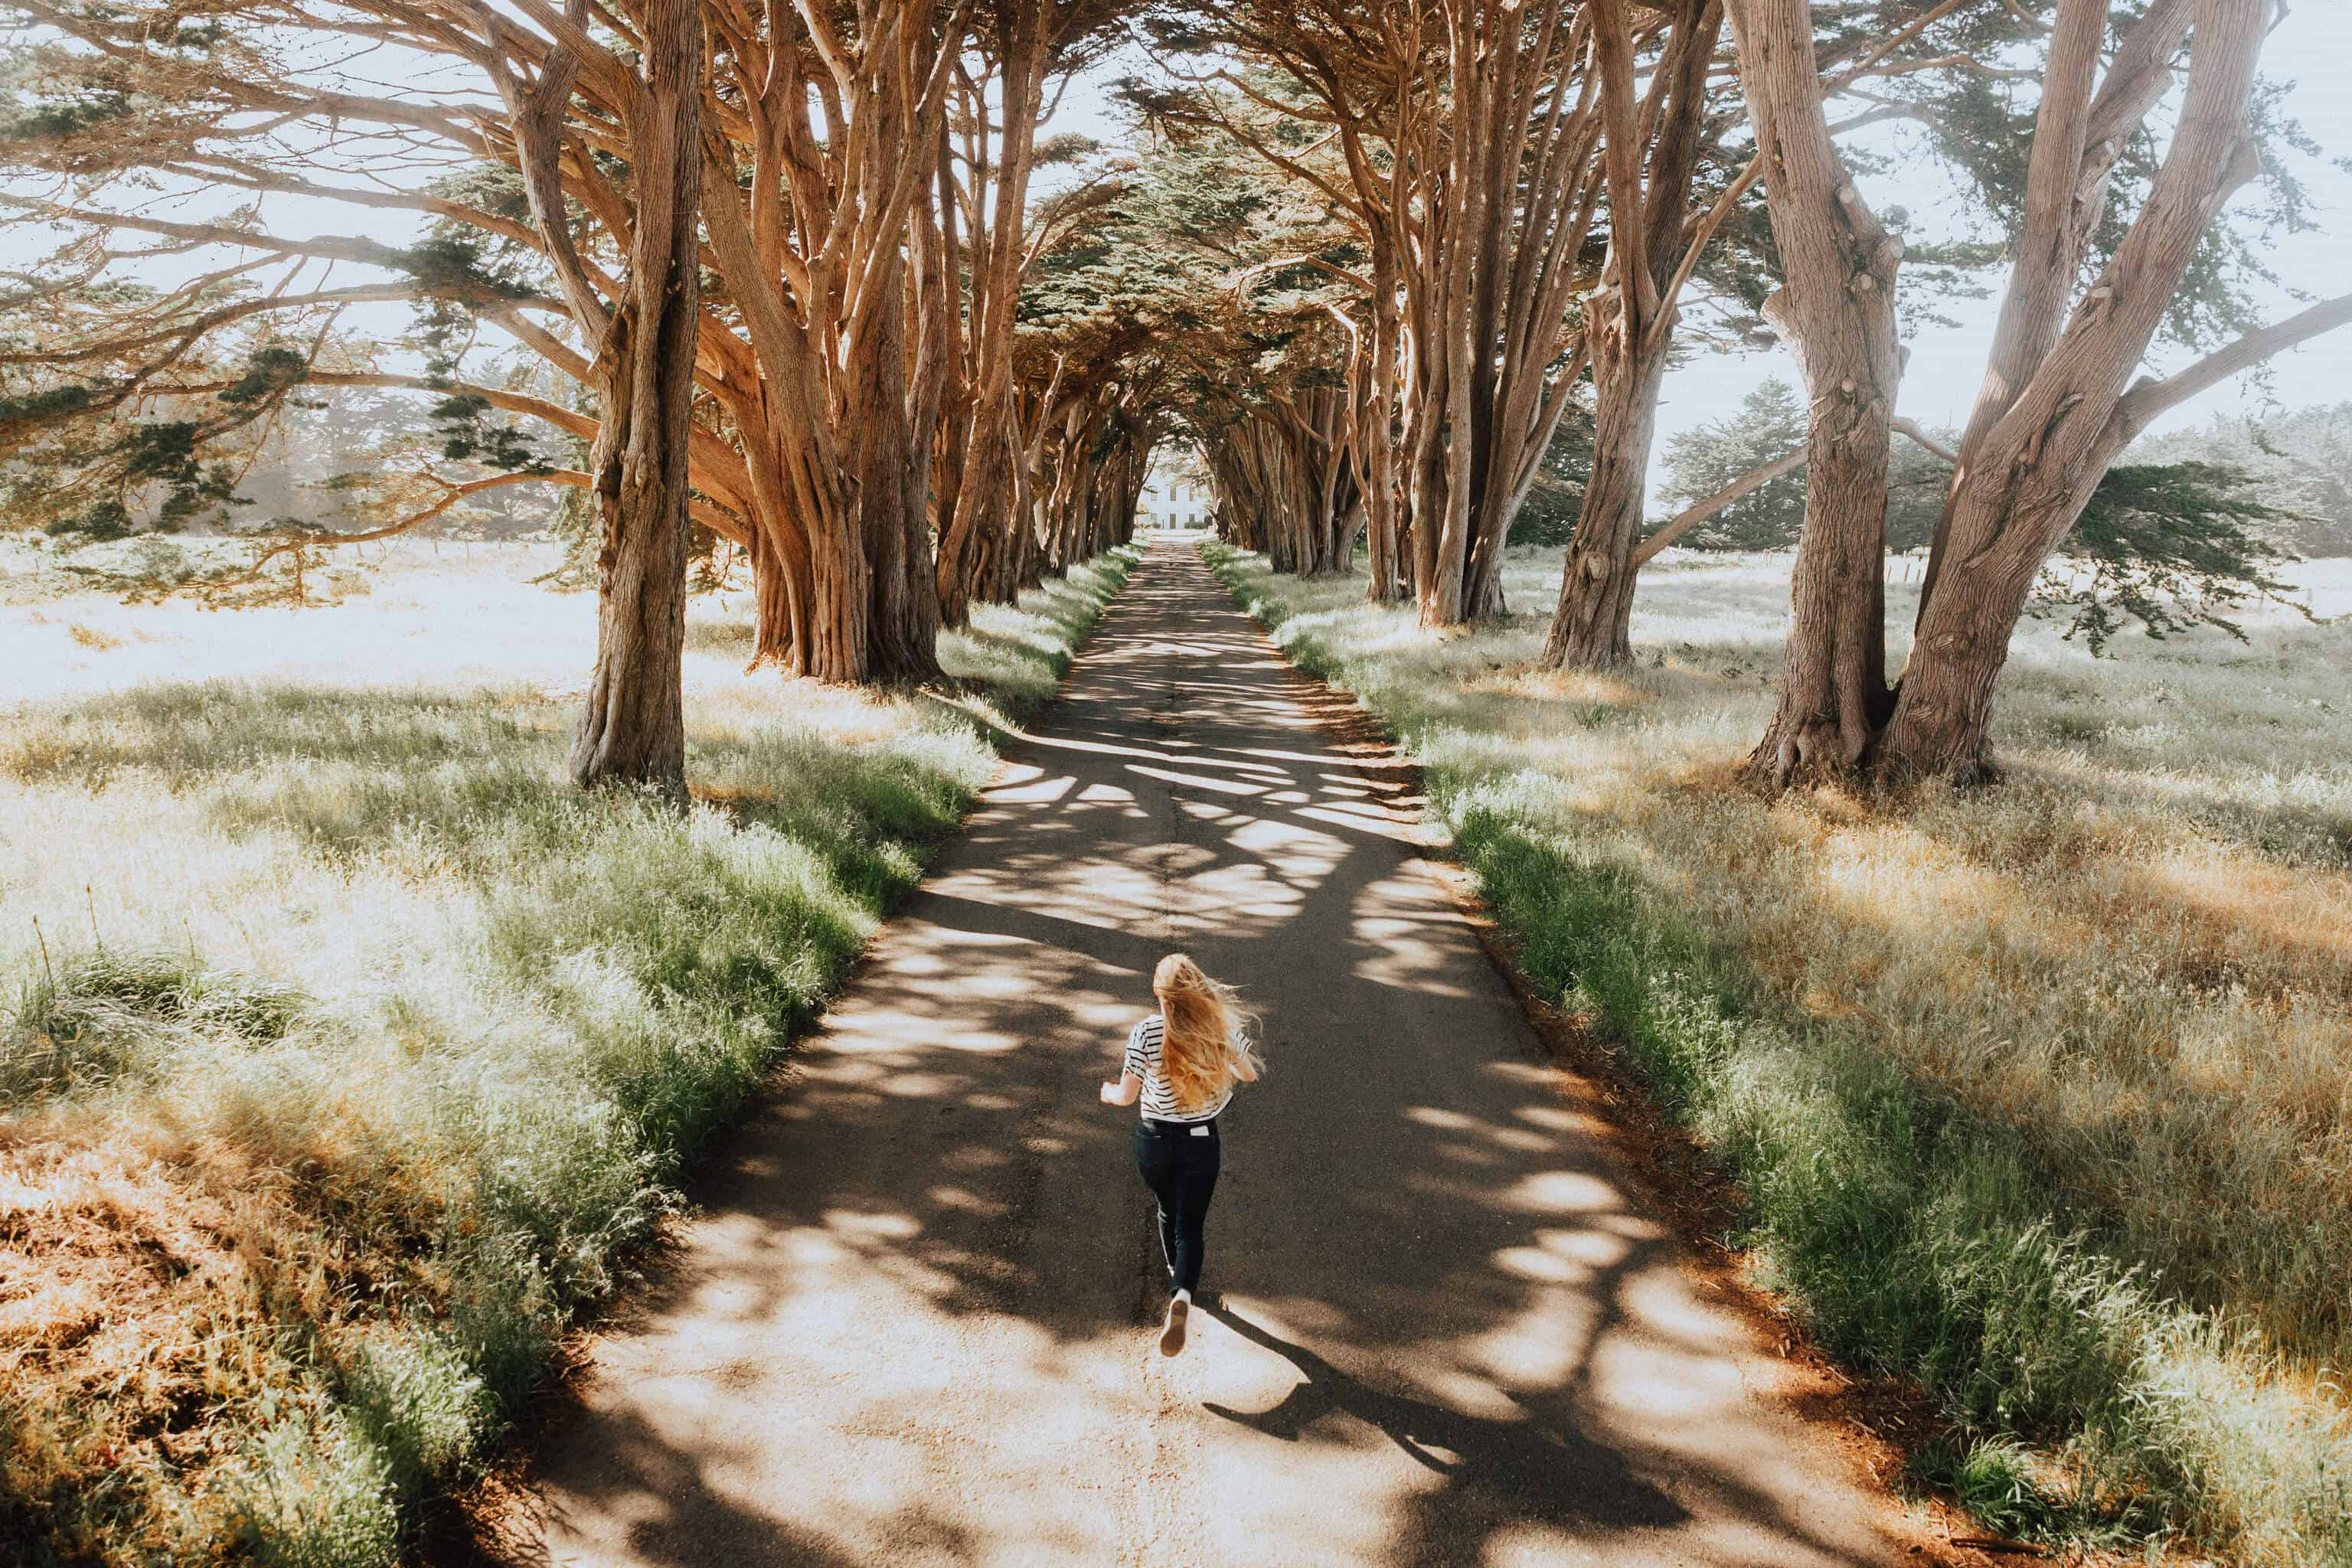 Pacific Coast Highway Road Trip Stops - Cypress Tree Tunnel